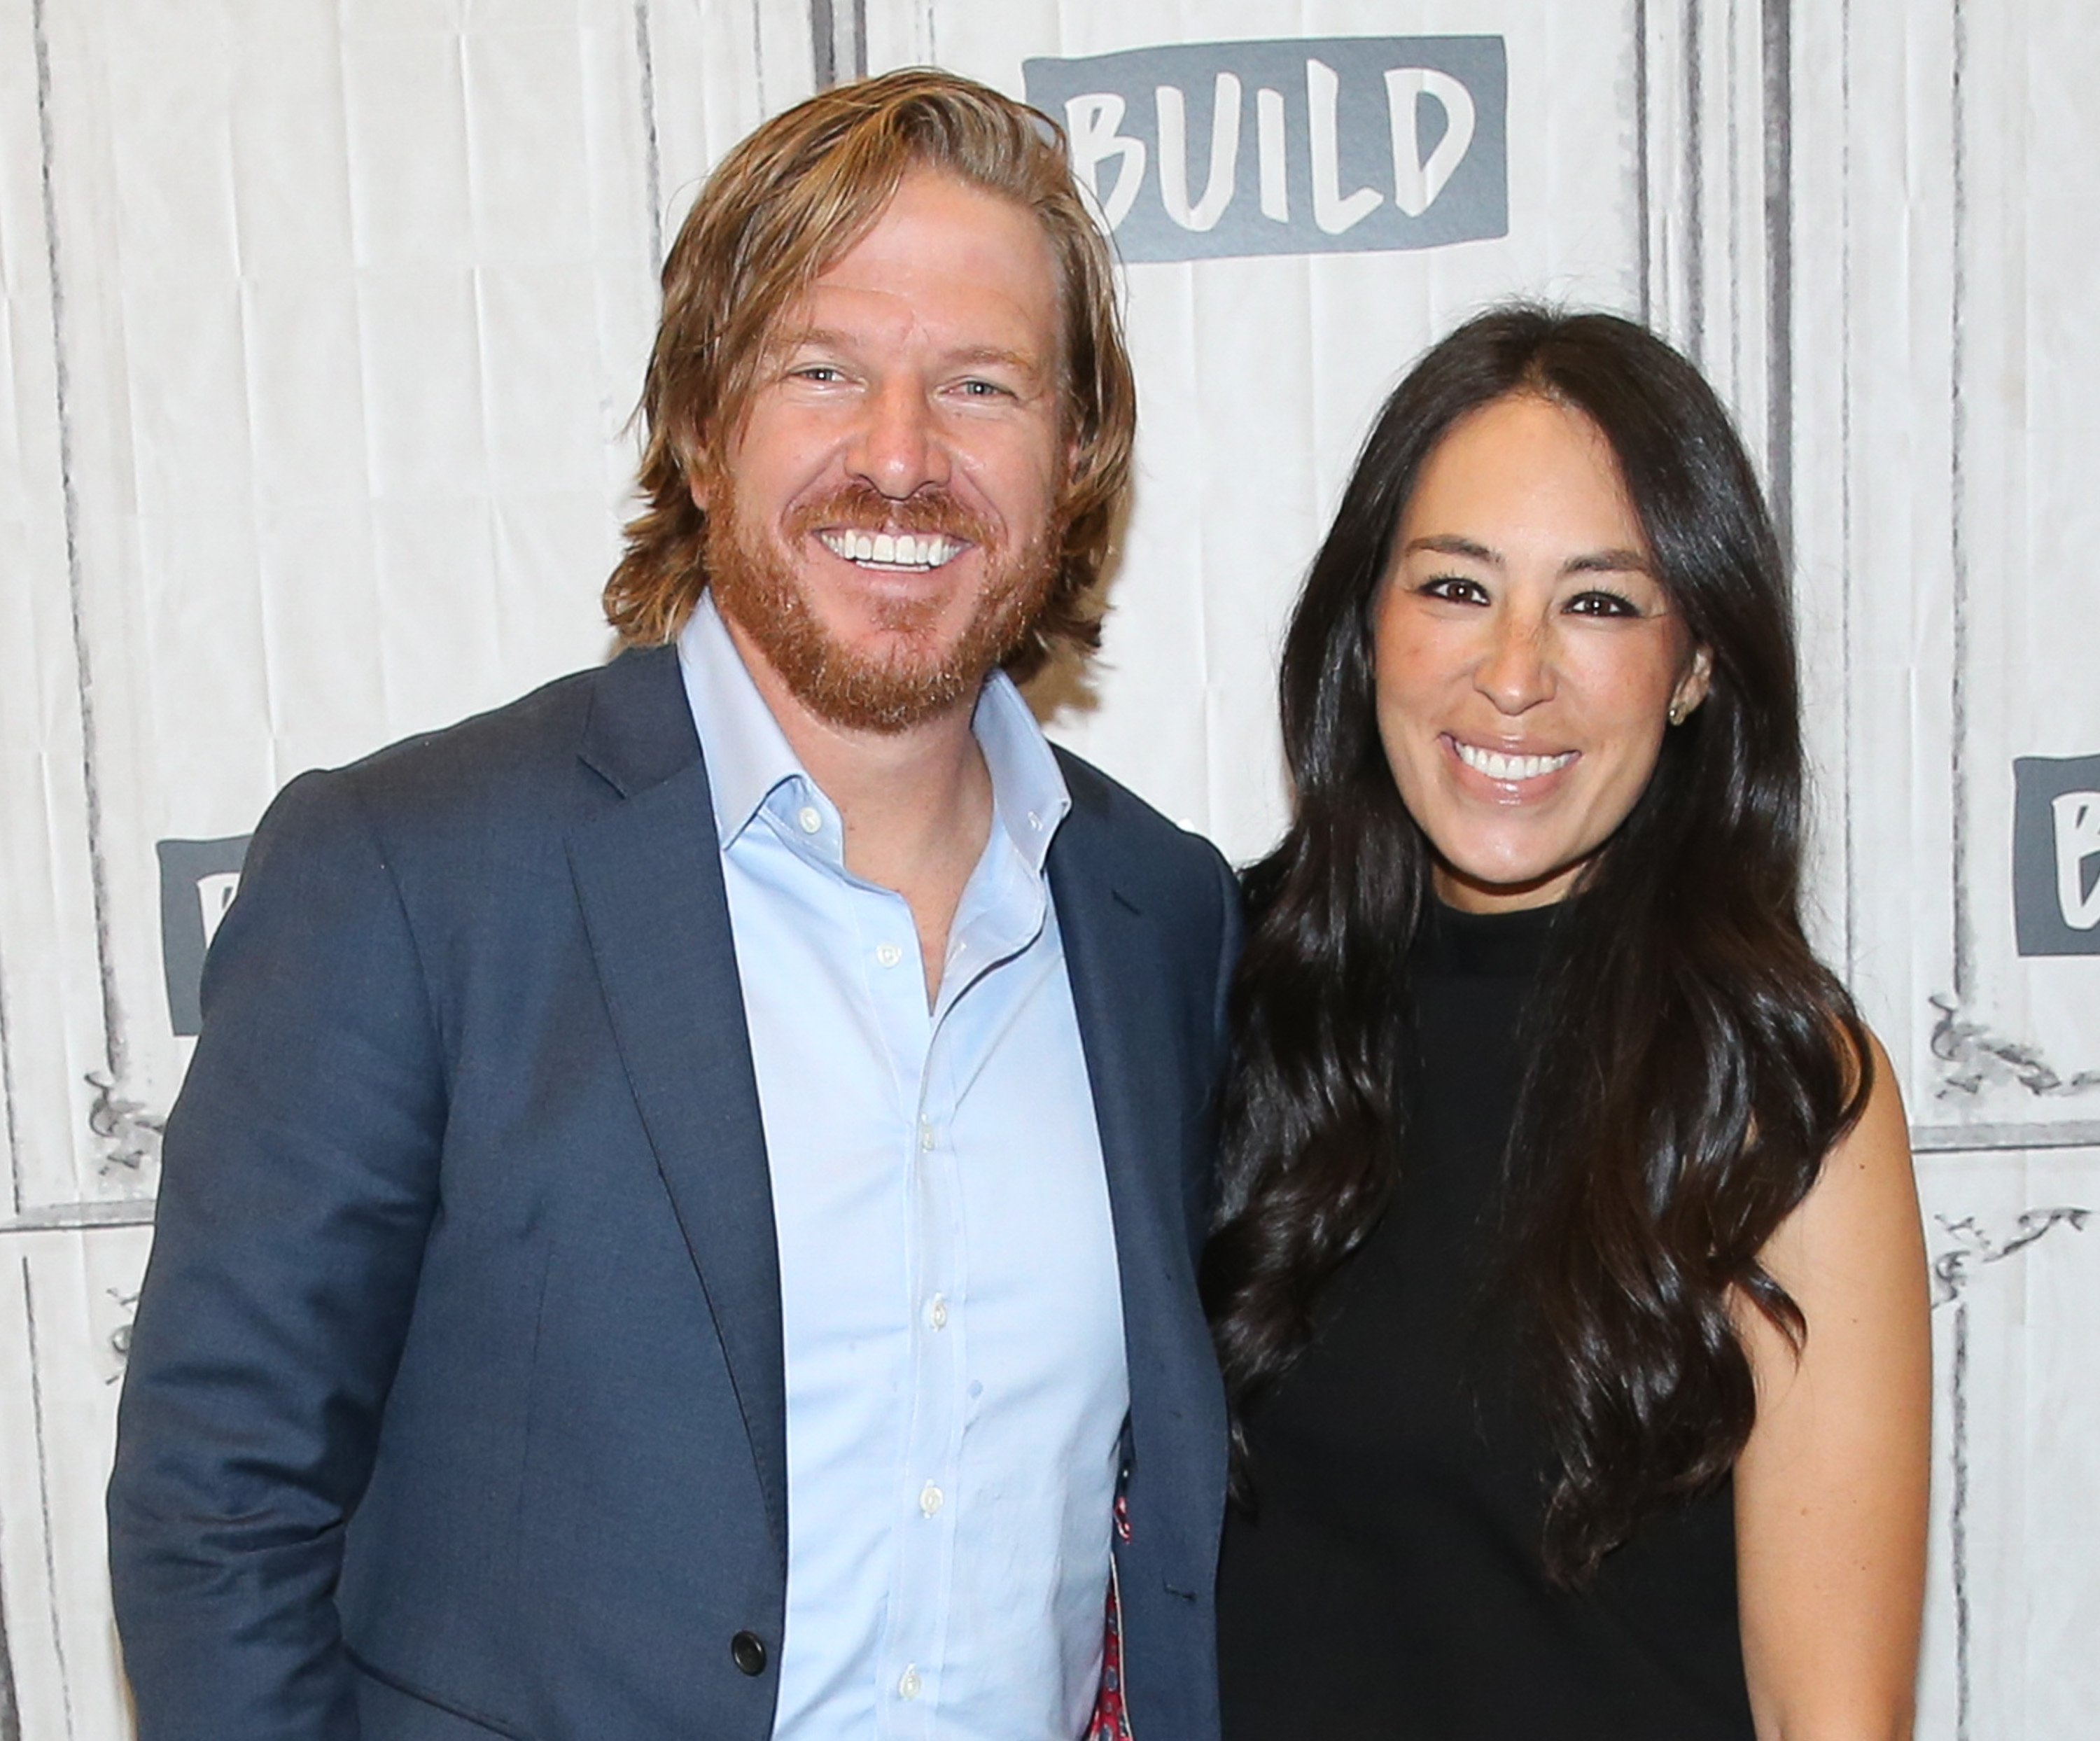 Chip Gaines and Joanna Gaines attend the Build Series at Build Studio on October 18, 2017. | Photo: GettyImages